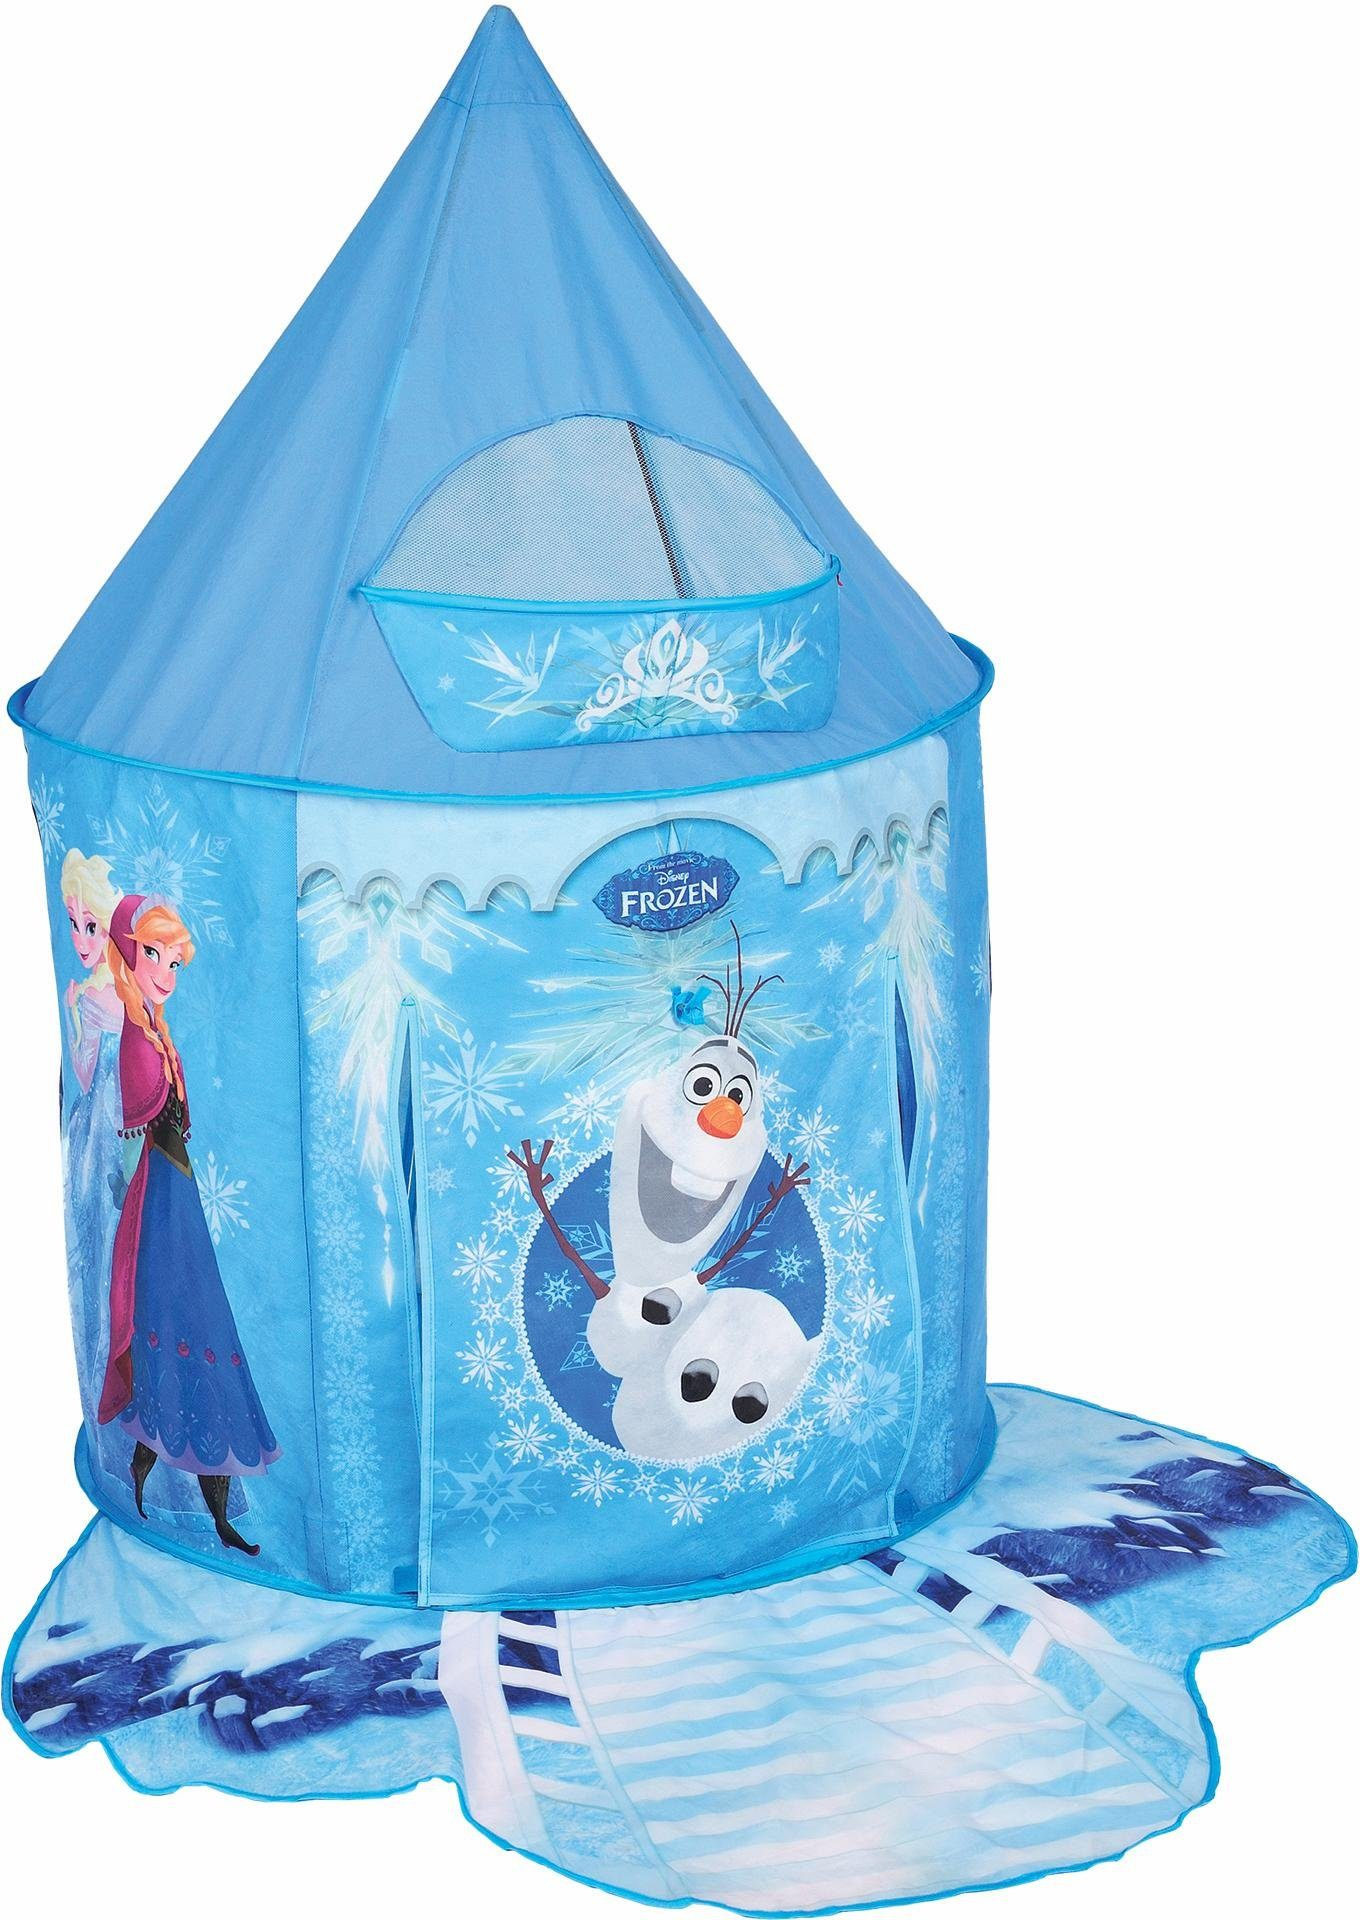 Beluga Kinderzelt, »Pop Up Zelt Frozen«